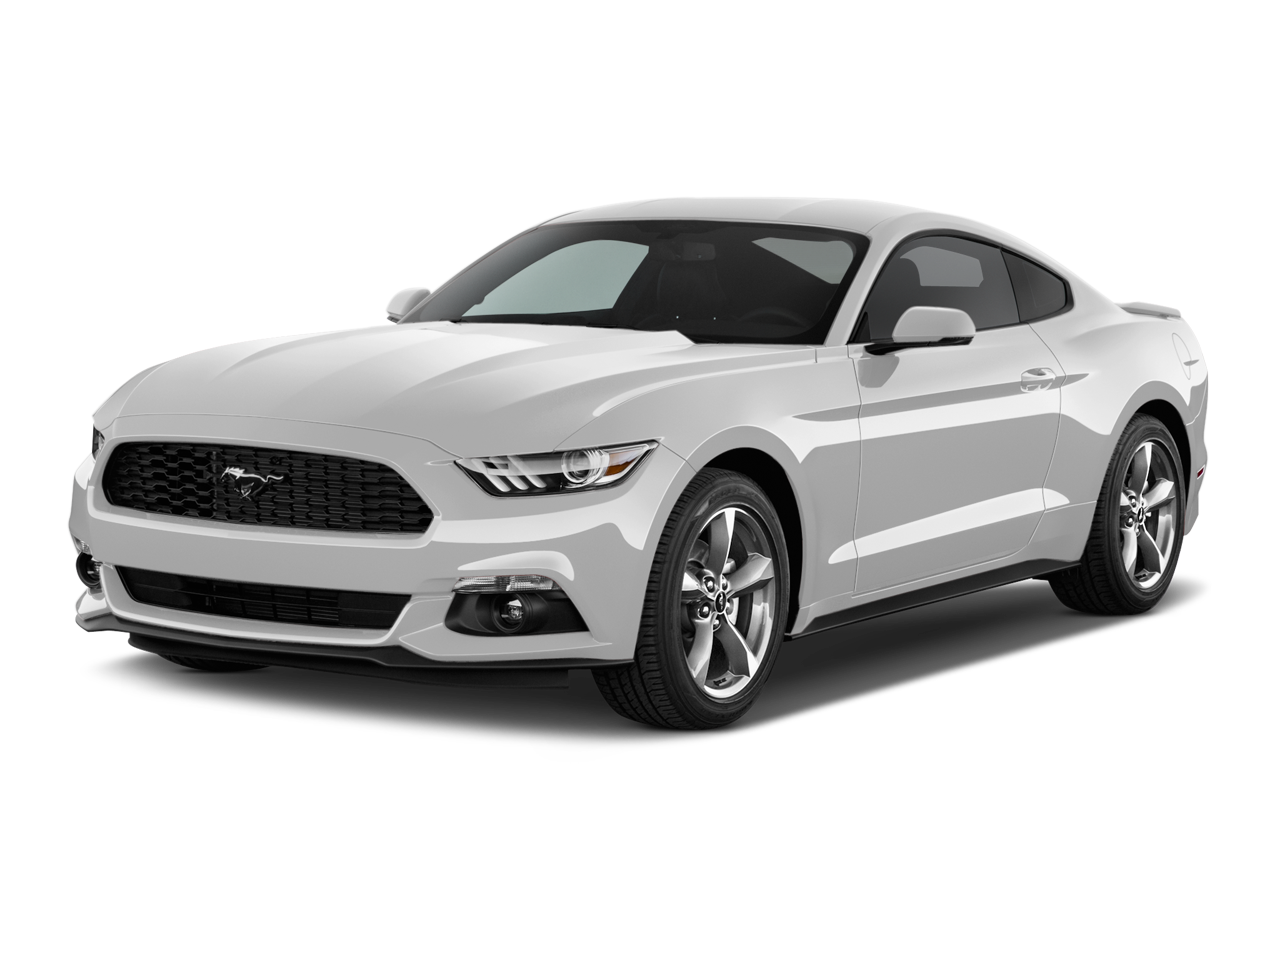 new 2017 ford mustang v6 near garland tx prestige ford. Black Bedroom Furniture Sets. Home Design Ideas